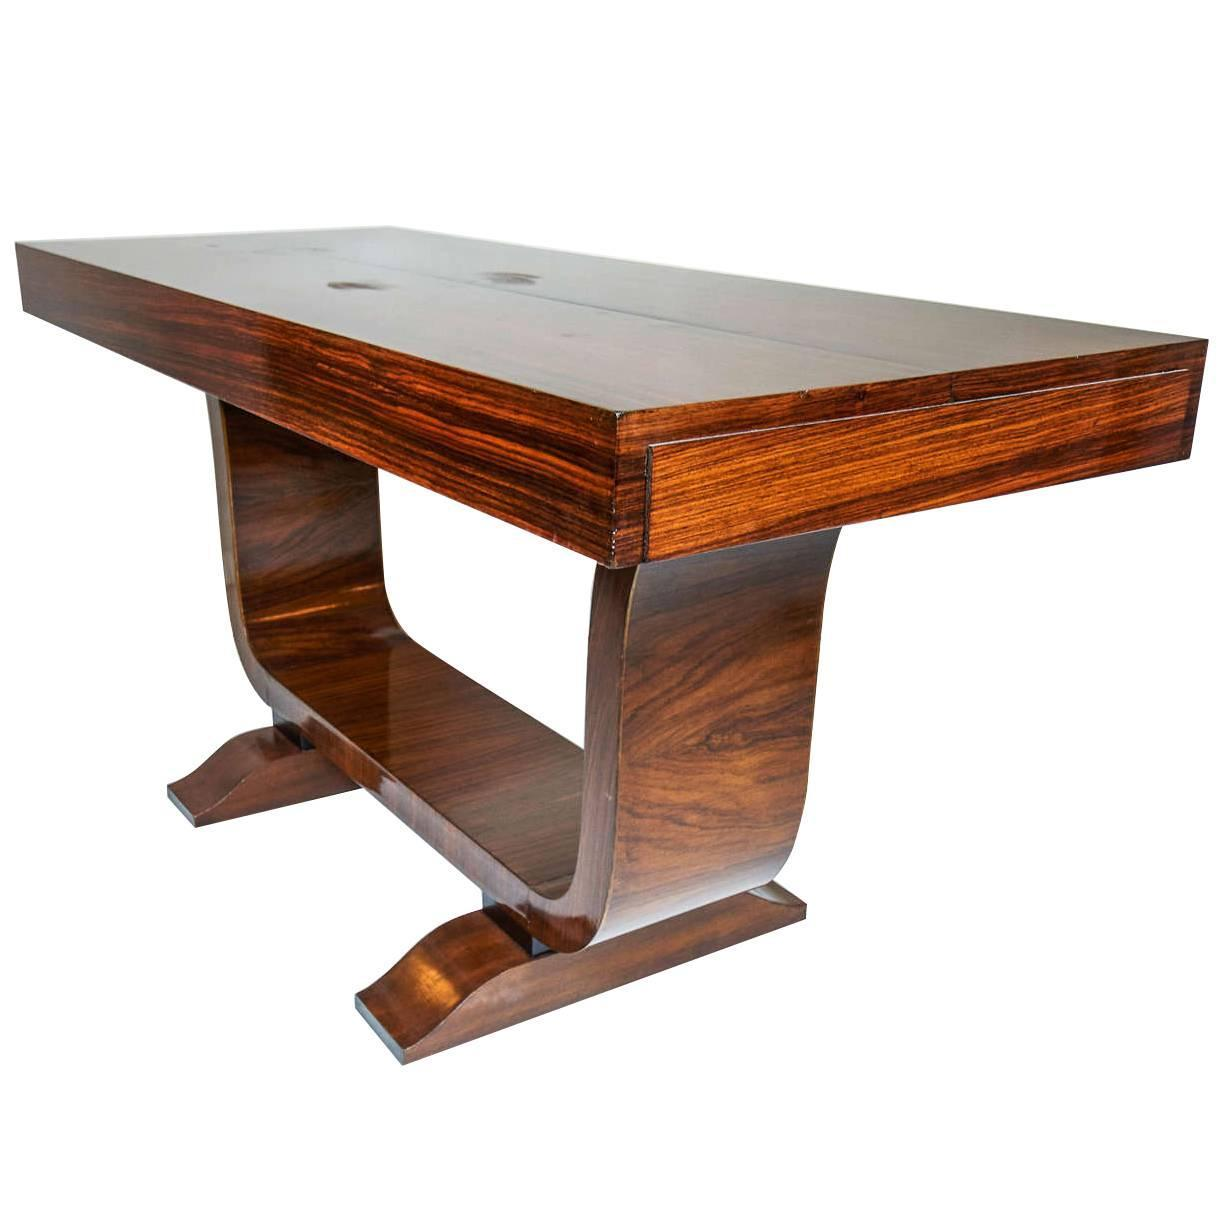 Elegant Art Deco Console Table, 1930 At 1stdibs